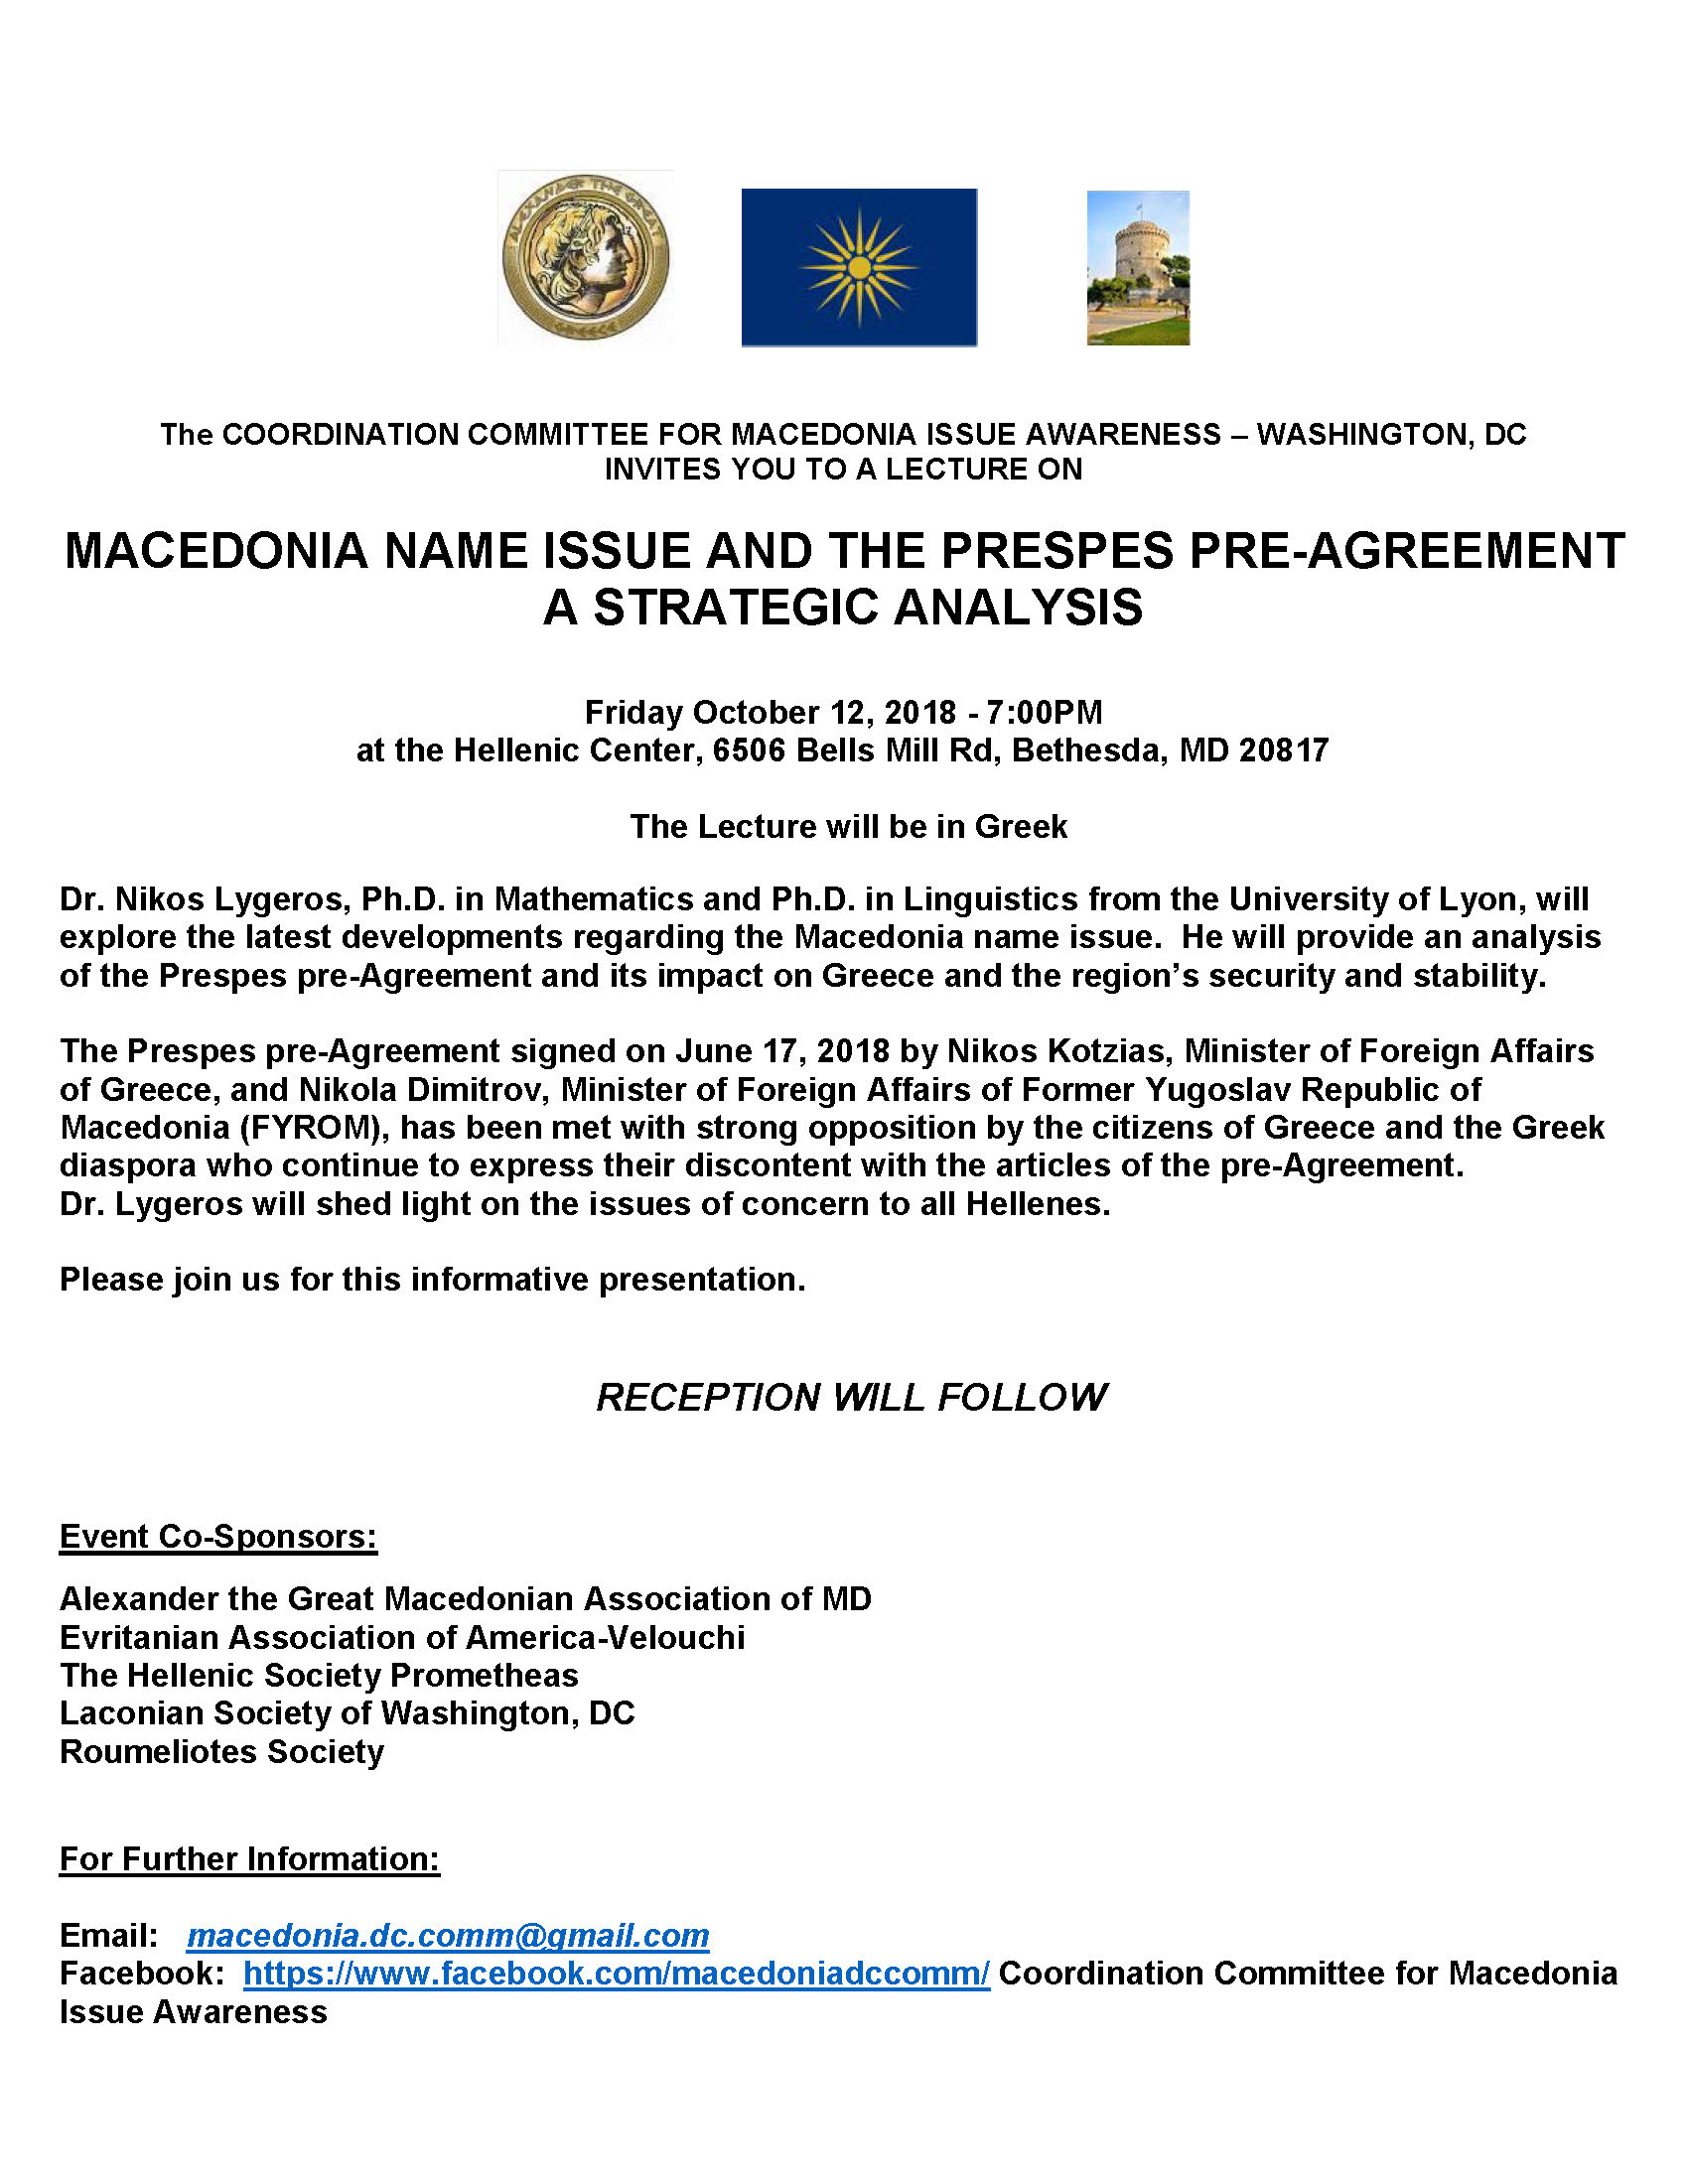 Macedonia name issue and the Prespes pre-agreement: a strategic analysis